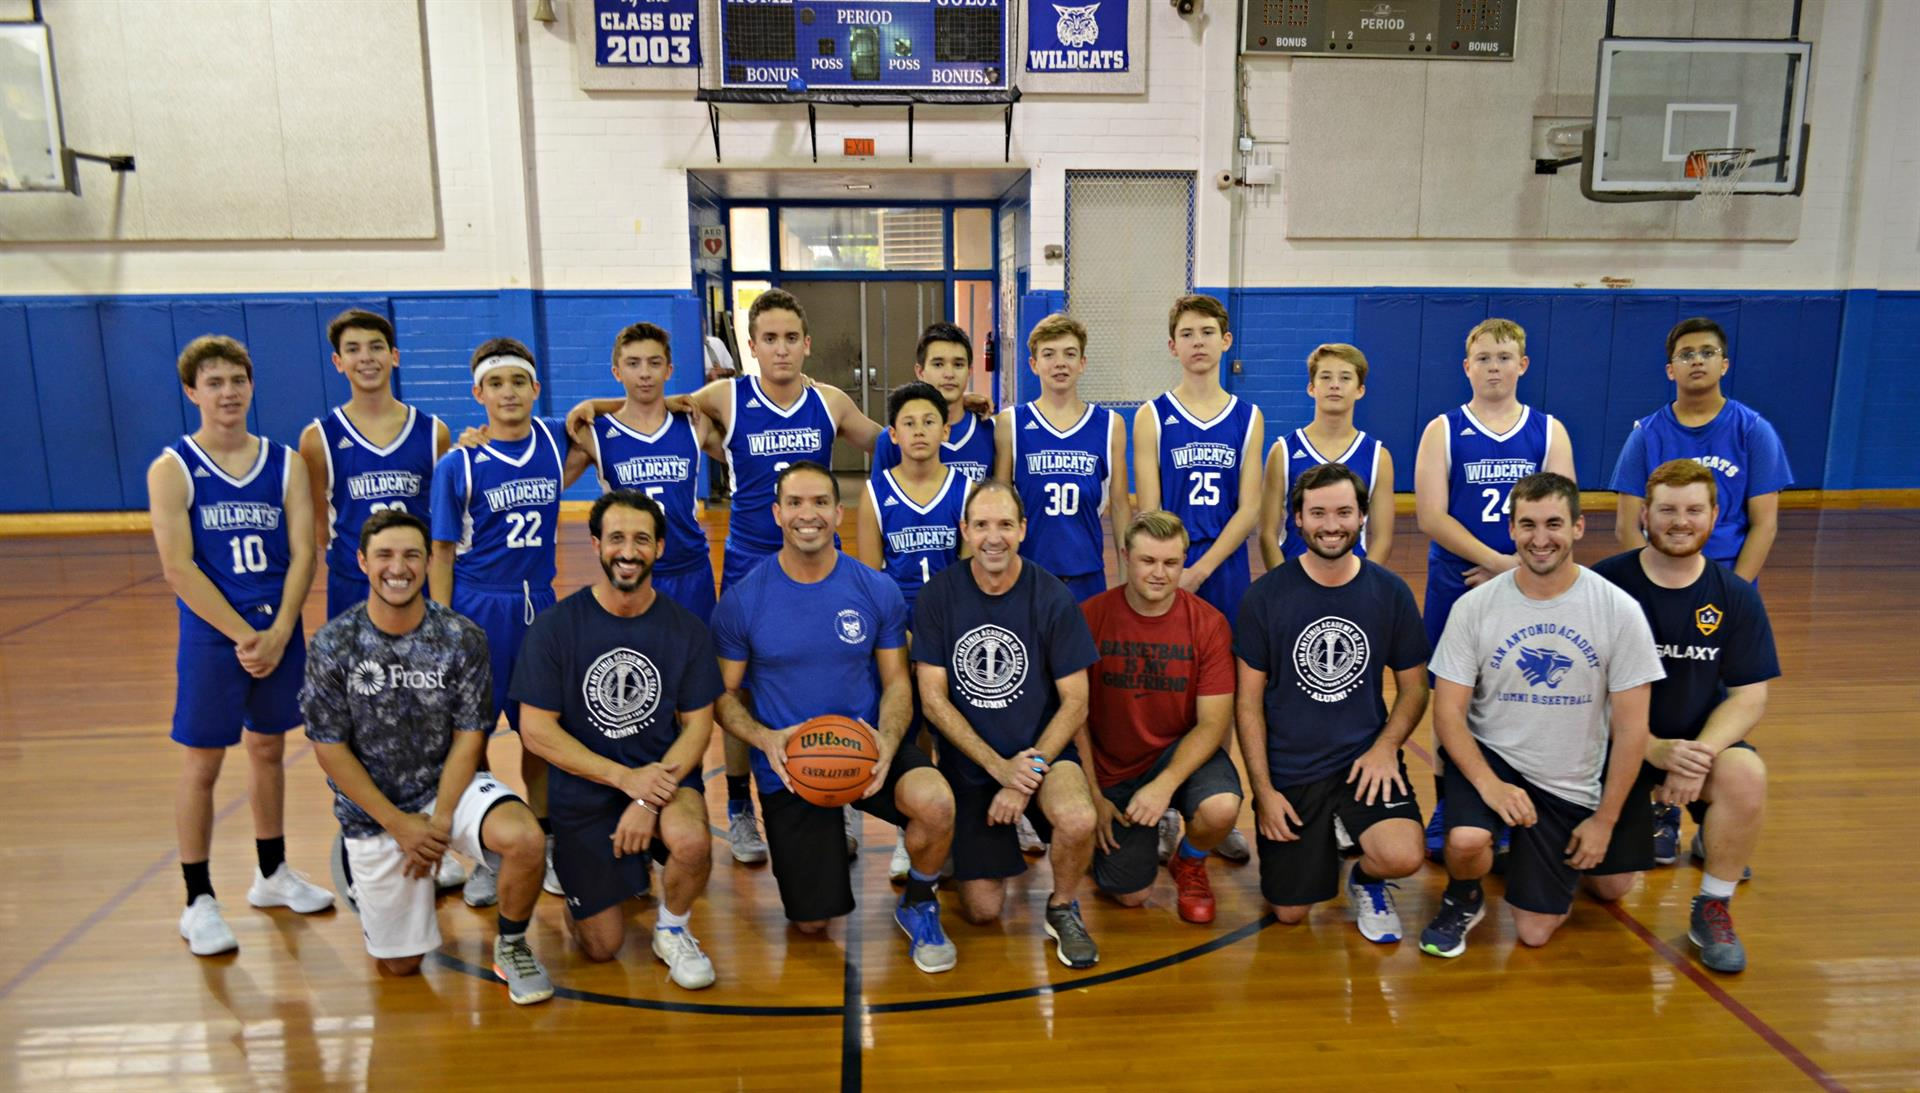 Alumni vs. 8th Grade Annual Basketball Game